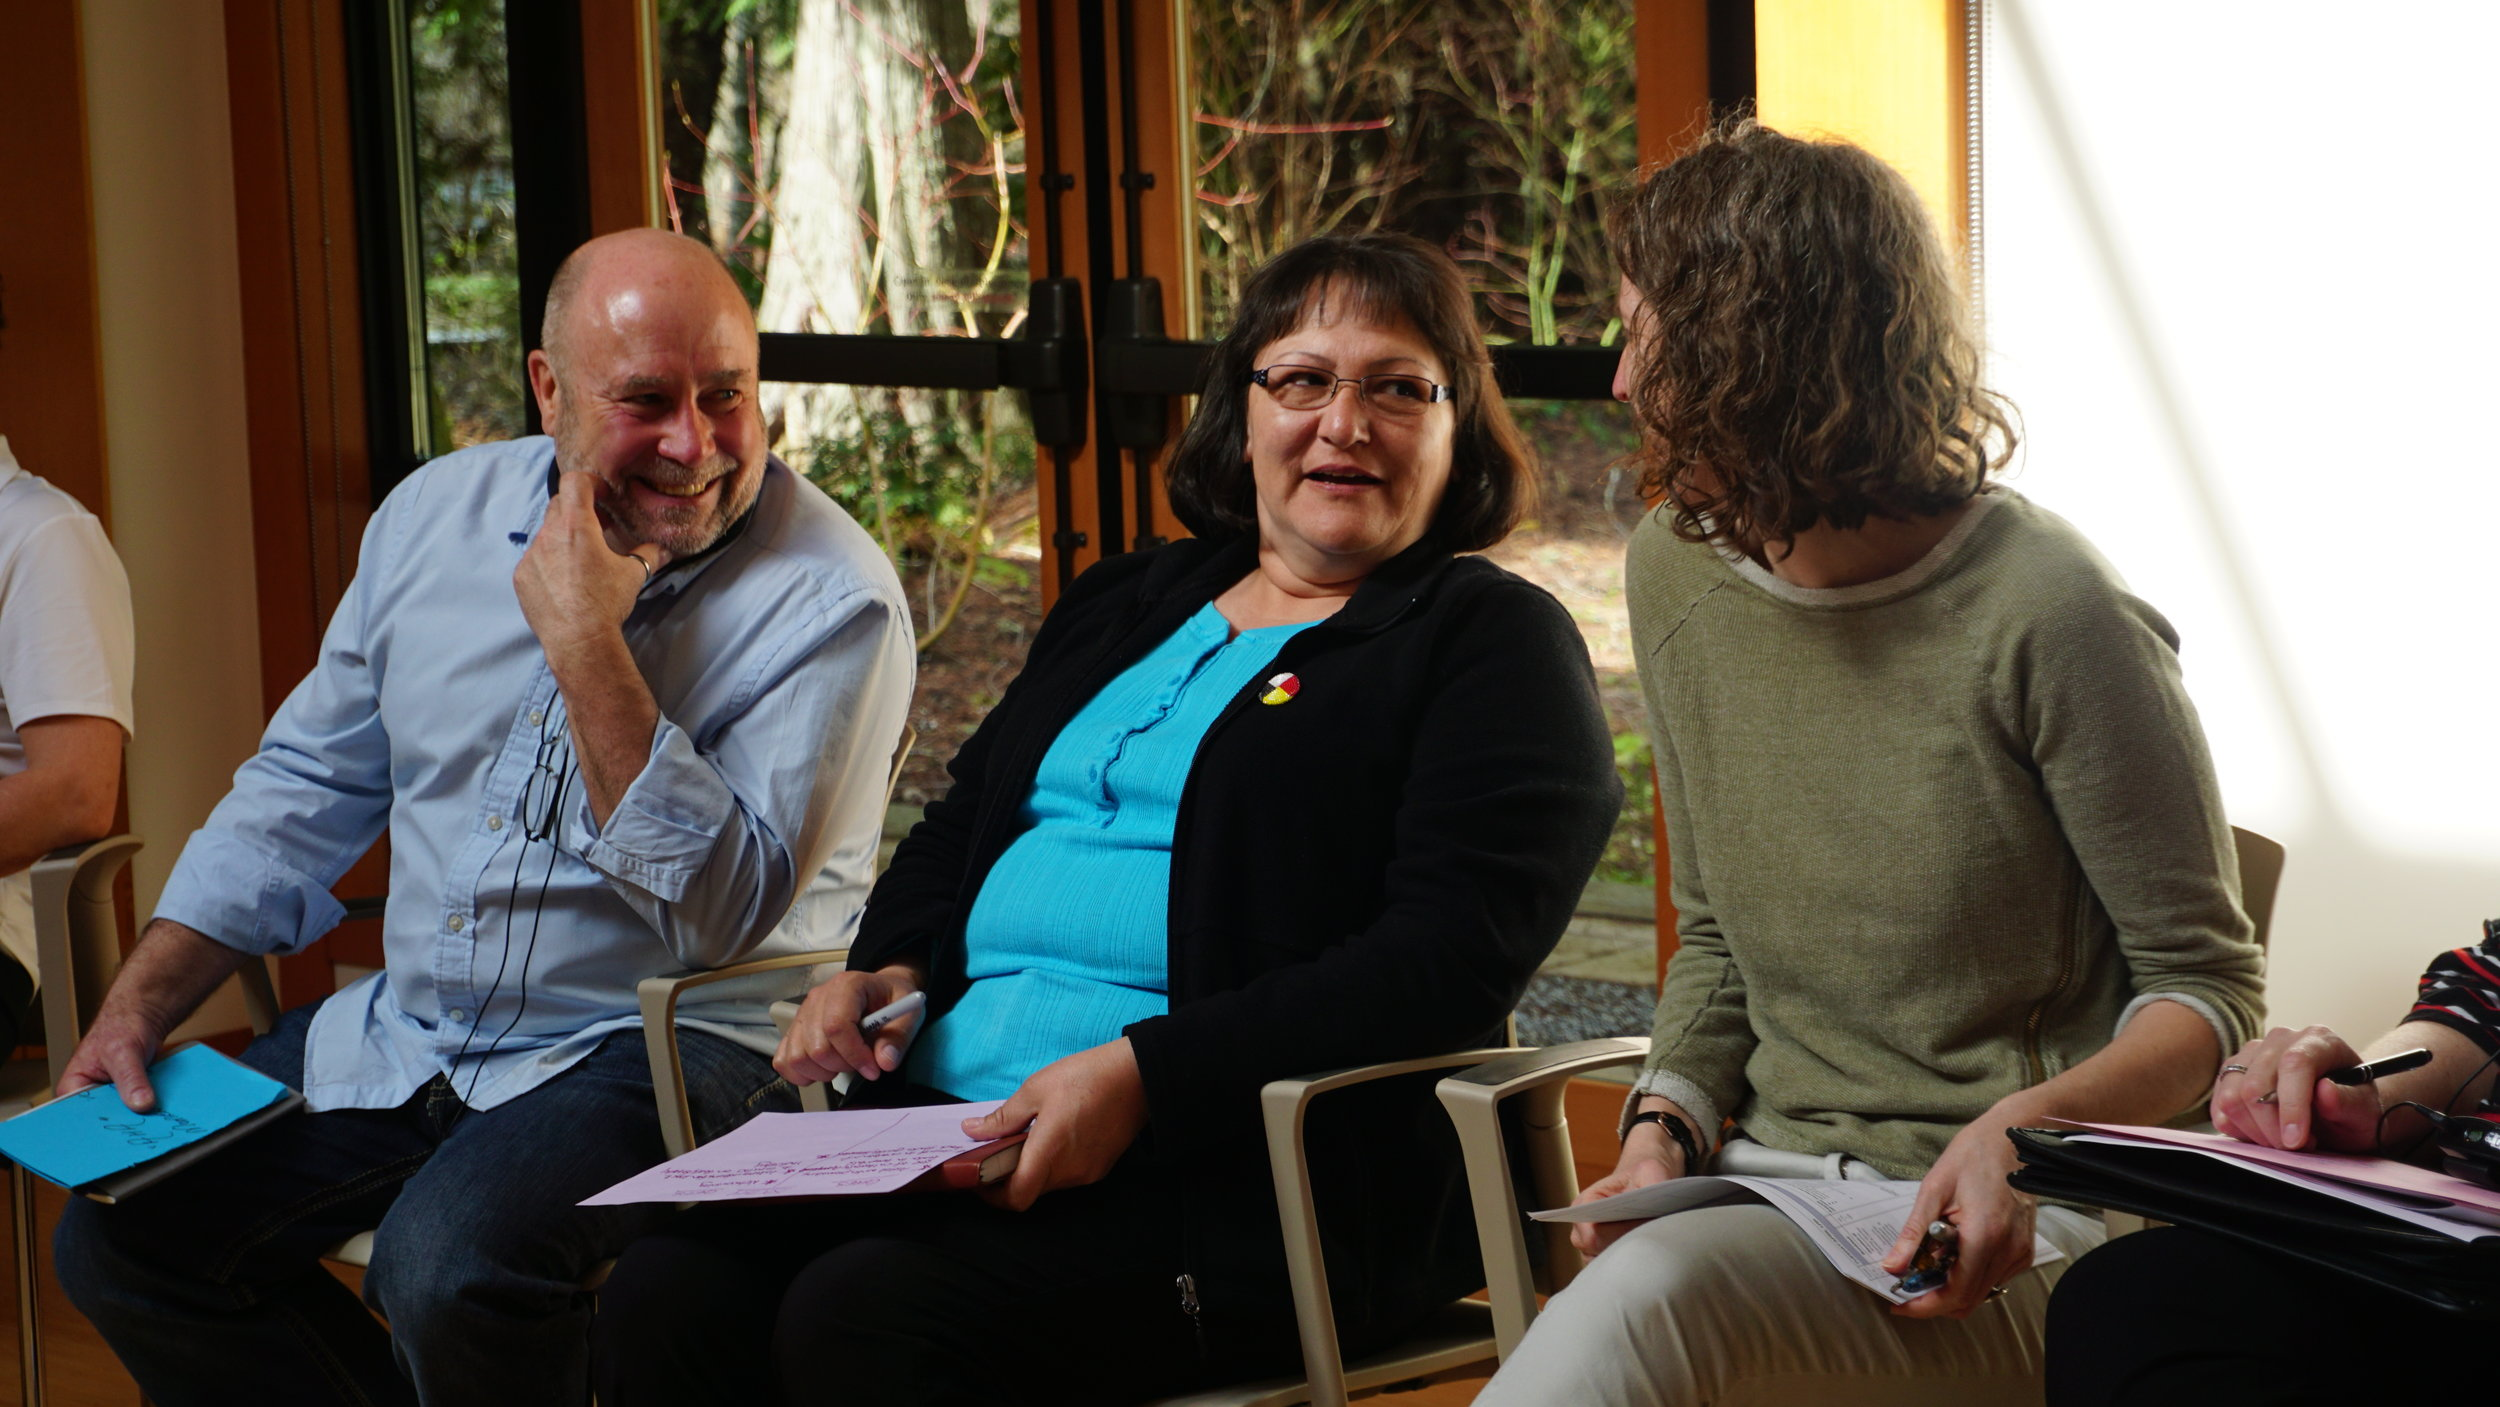 Dan Munshaw, Kathy Loon and Beth Hunter chat at the second cohort retreat in British Columbia in Spring 2018.